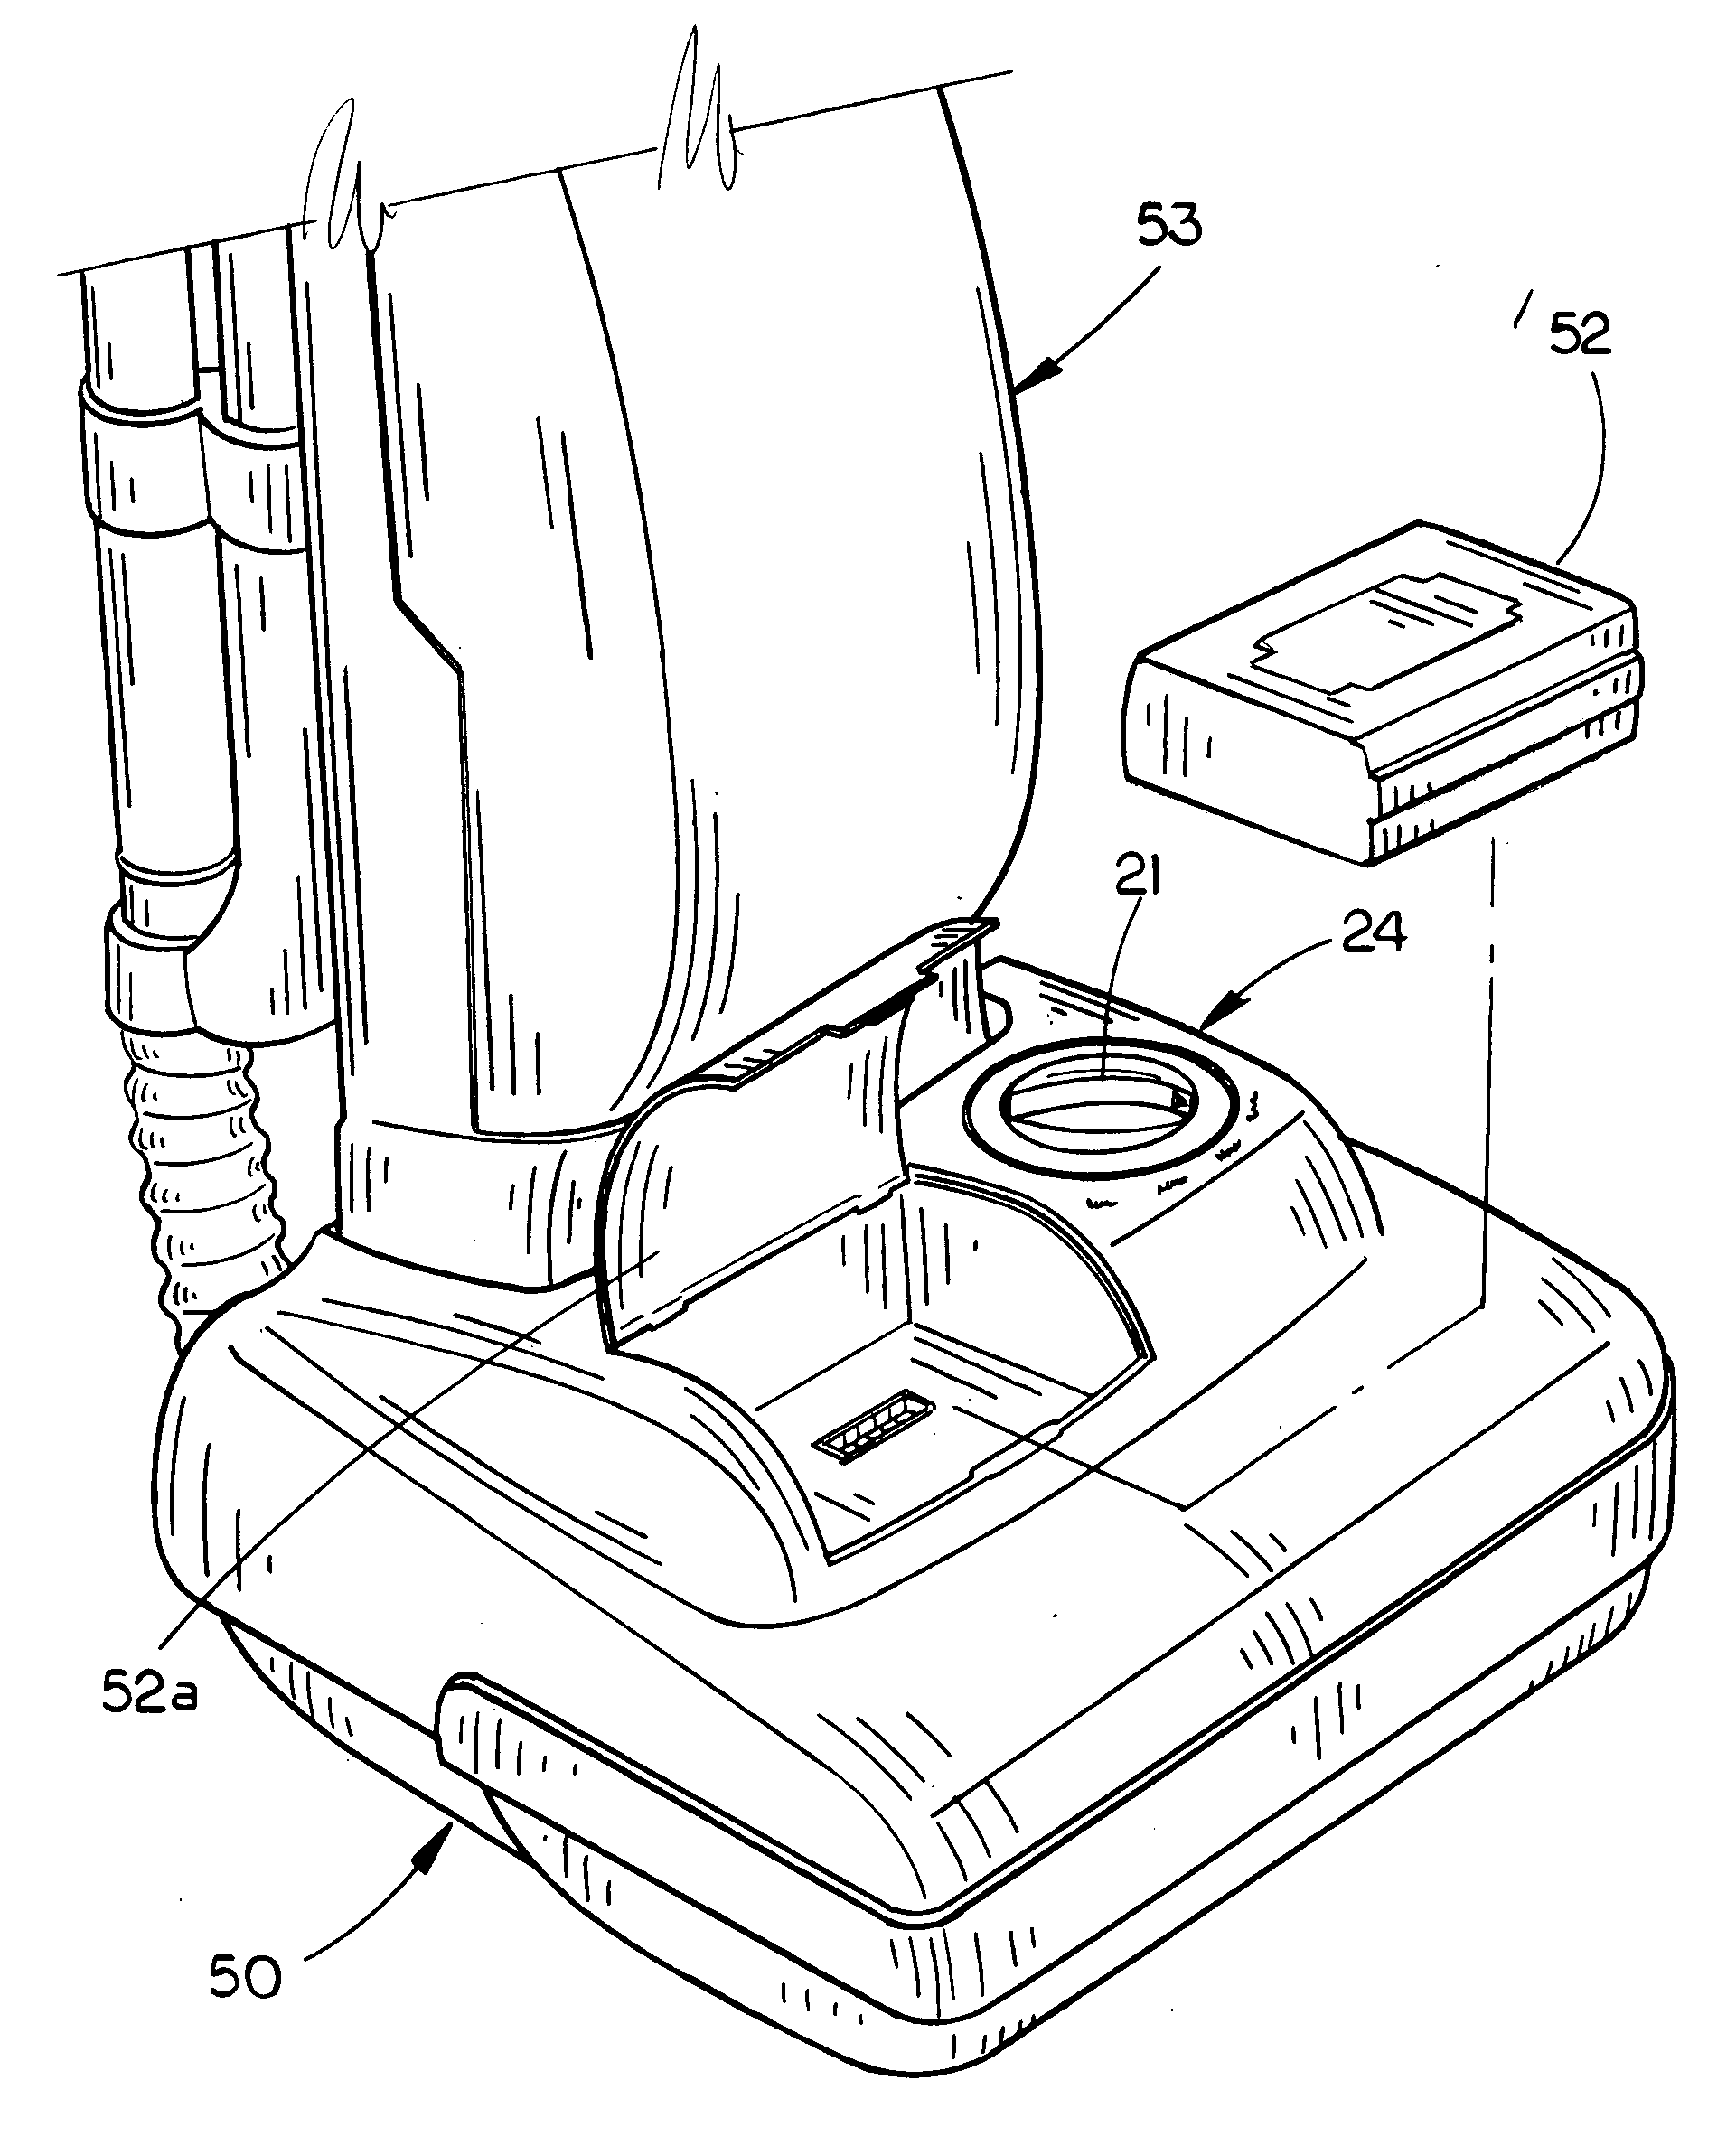 patent us20080284363 hybrid electric cleaning device patents 12V Gear Motor patent drawing